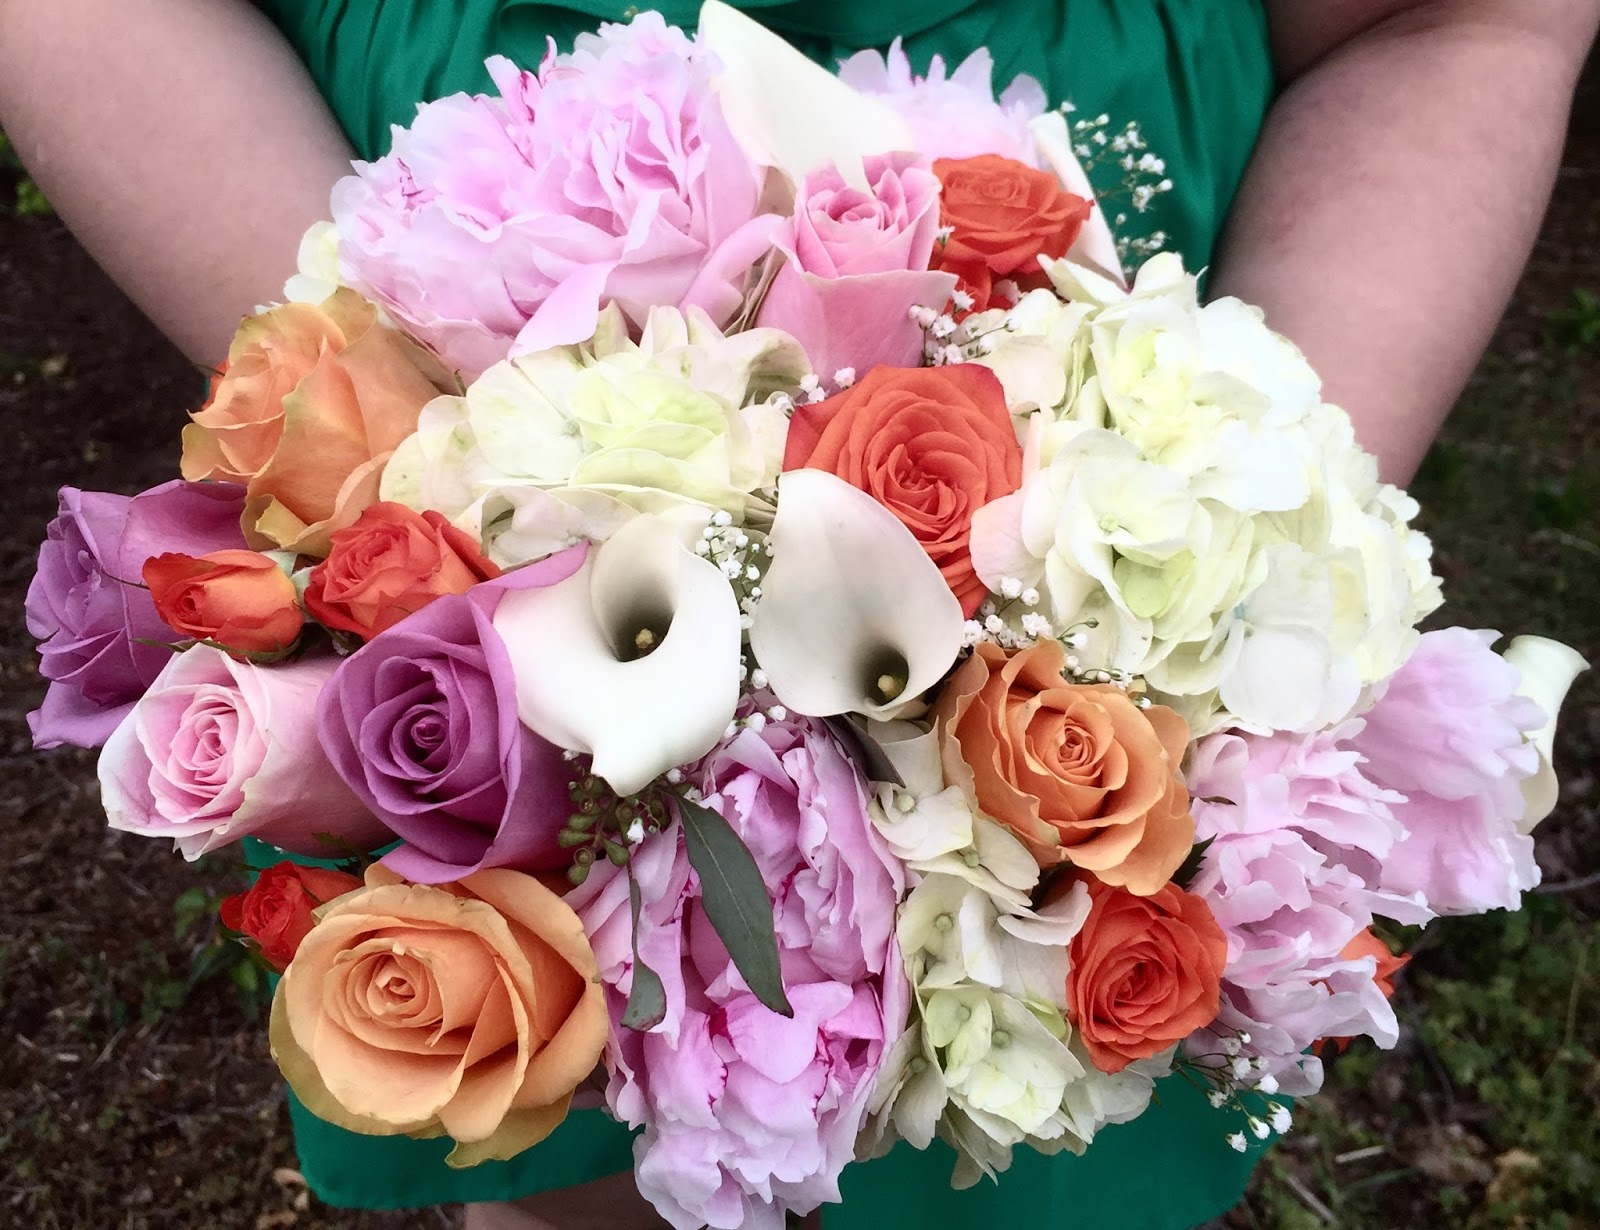 Stein Rose: The Enchanted Petal: Stein Flowers